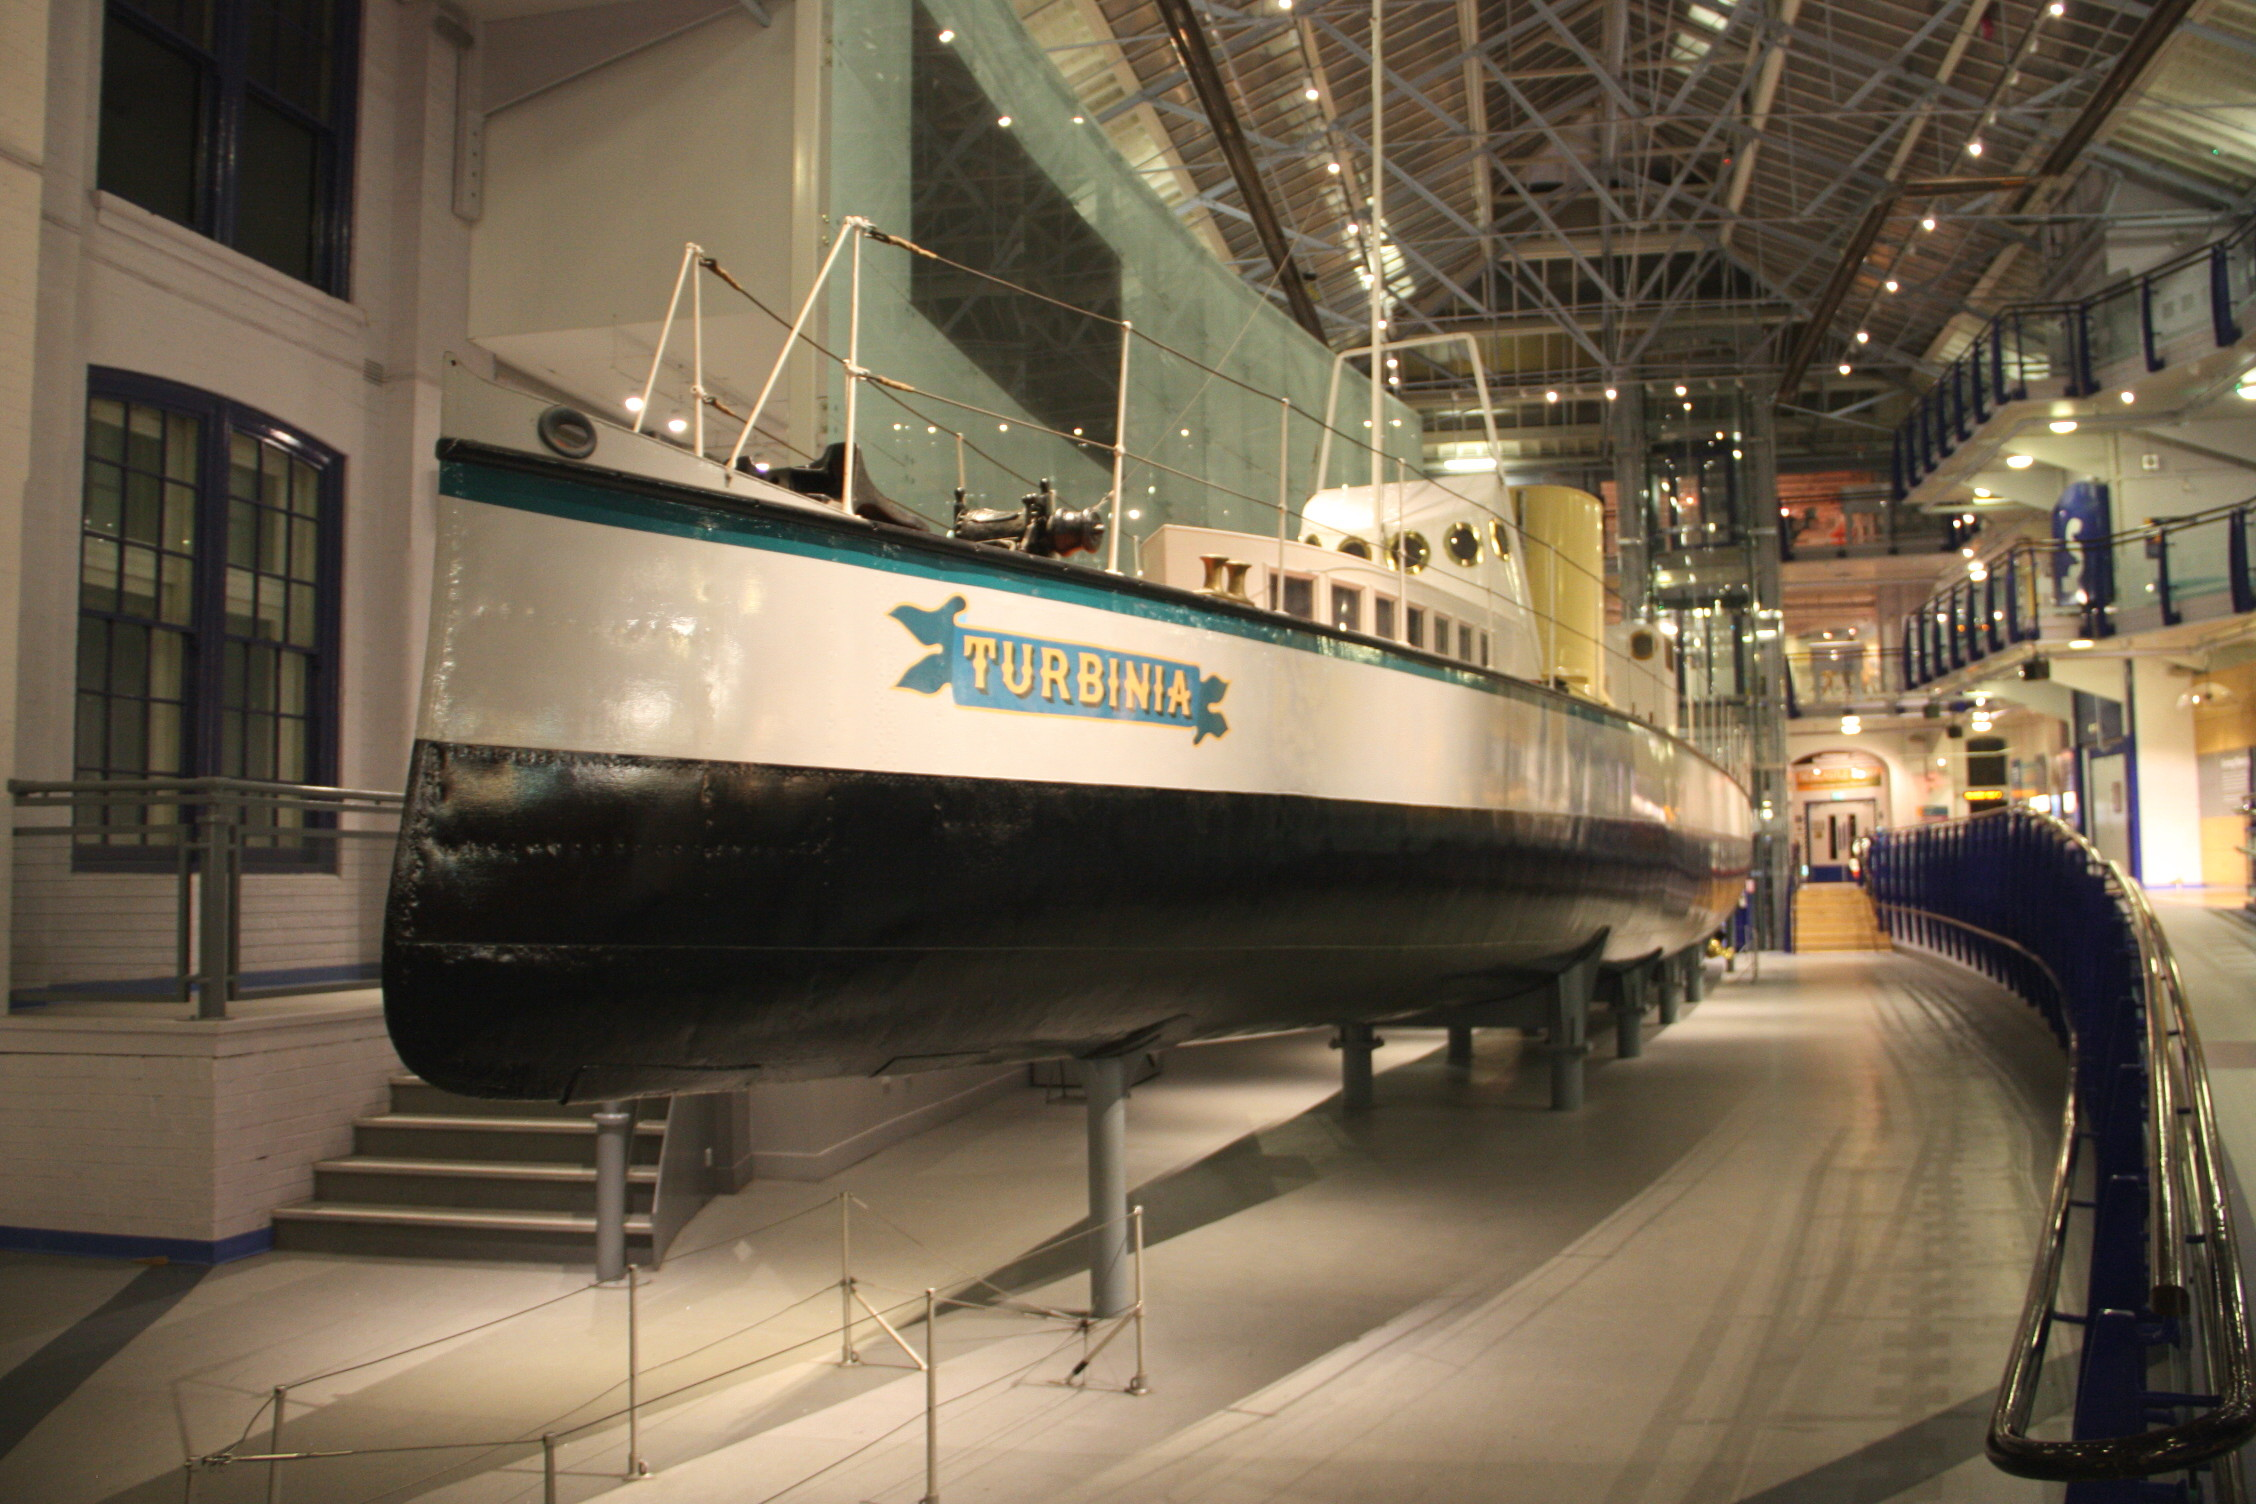 Turbinia_in_Newcastle_Discovery_Museum_2013.jpg